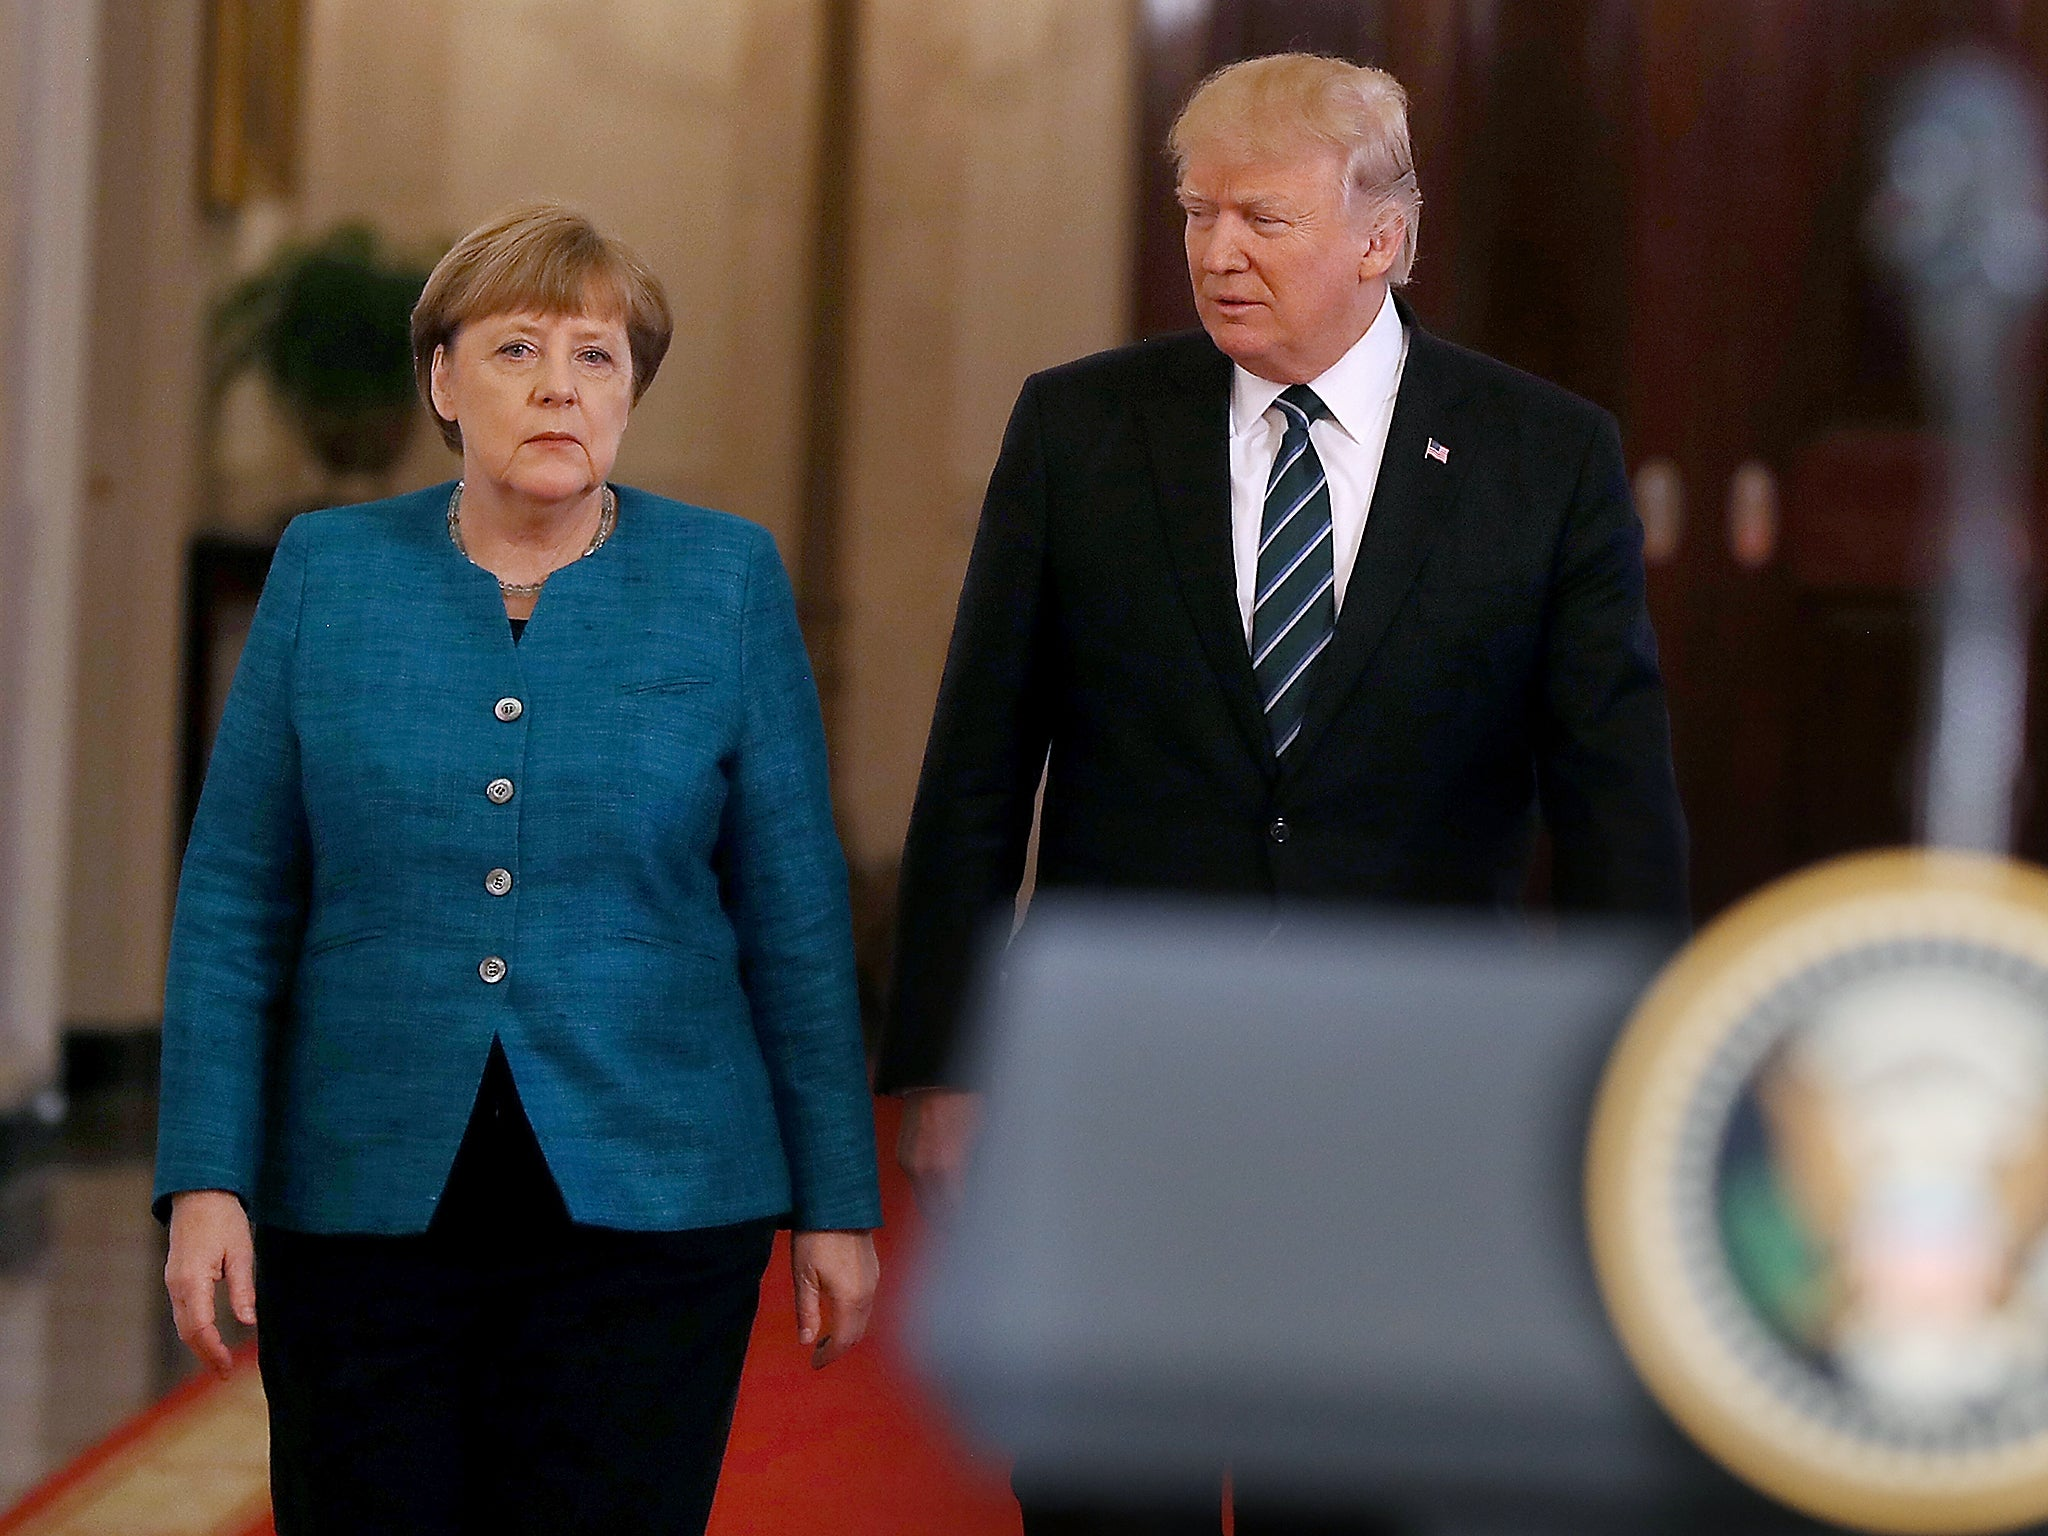 Trump printed out made-up £300bn Nato invoice and handed it to Merkel